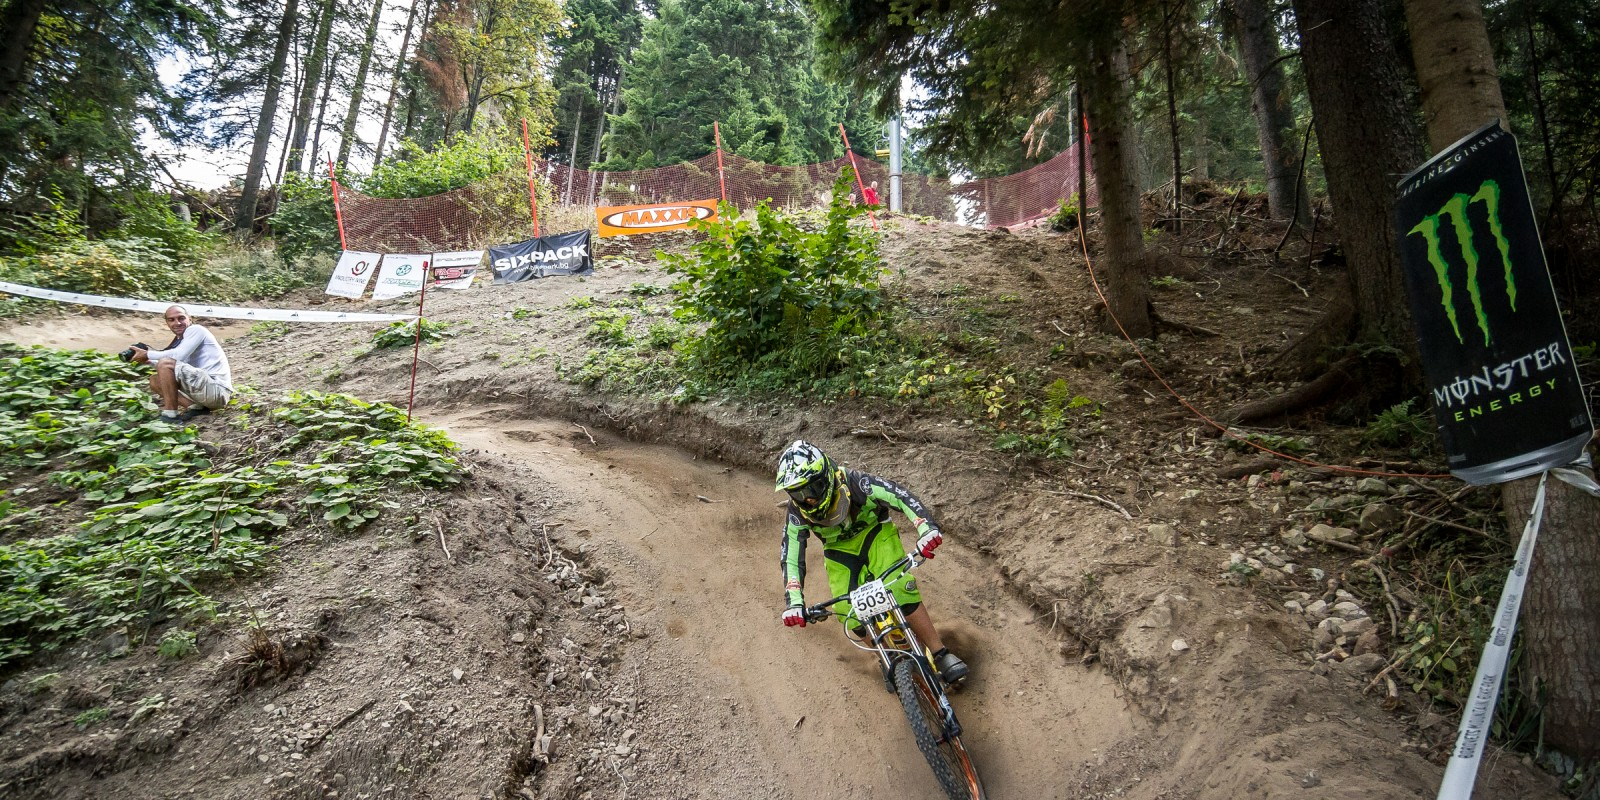 Borovets Open Cup was one of the biggest downhill mountain bike races of the season and ME supported the event.